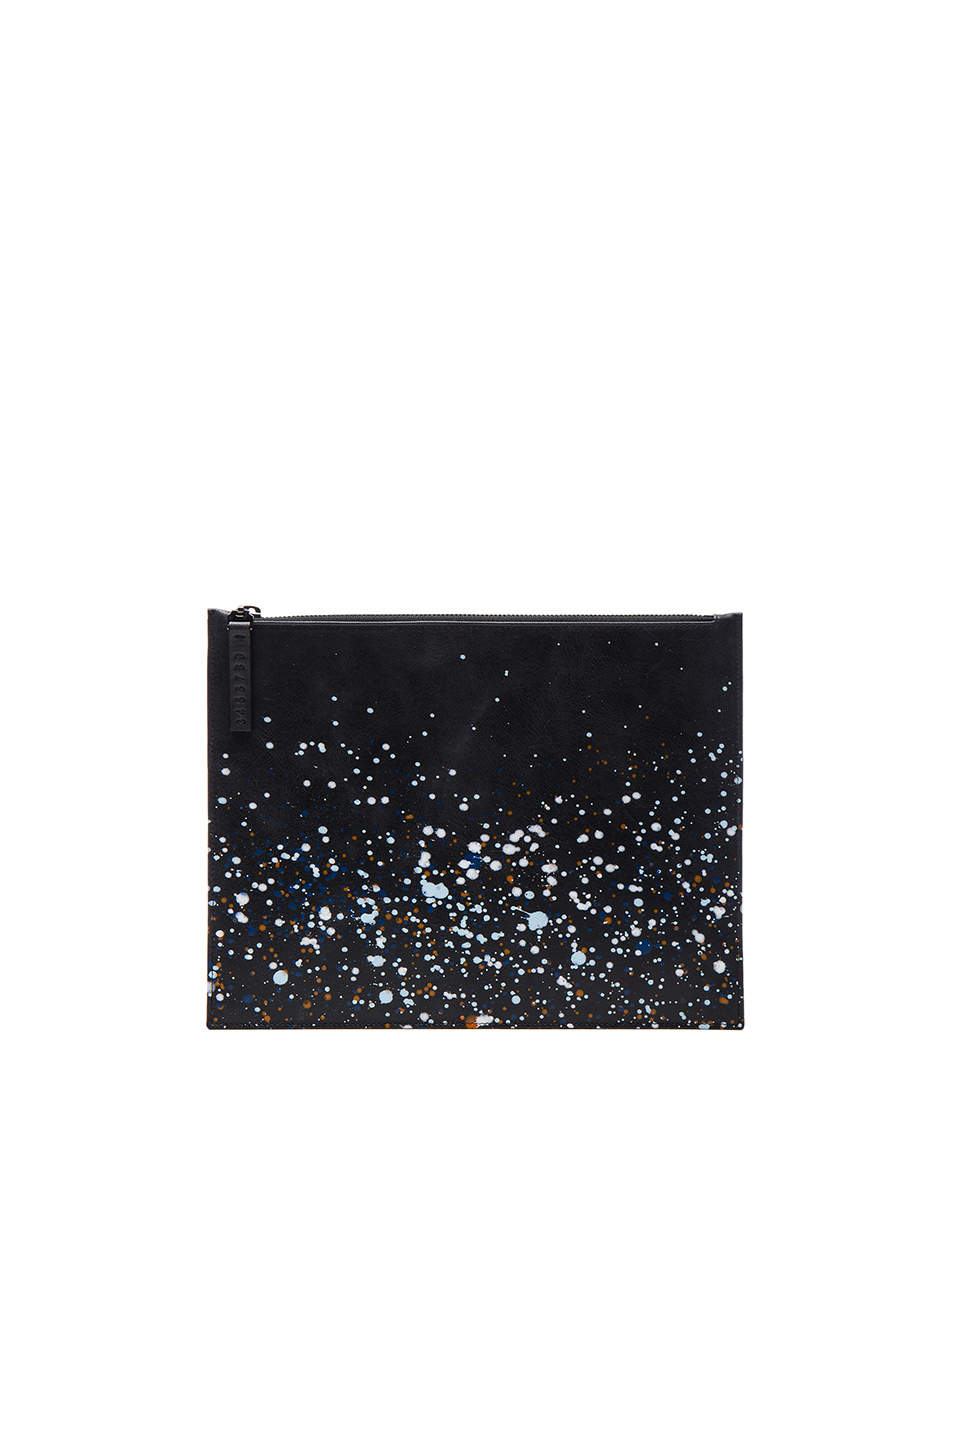 Maison Margiela Pollock Effect Pouch in Black